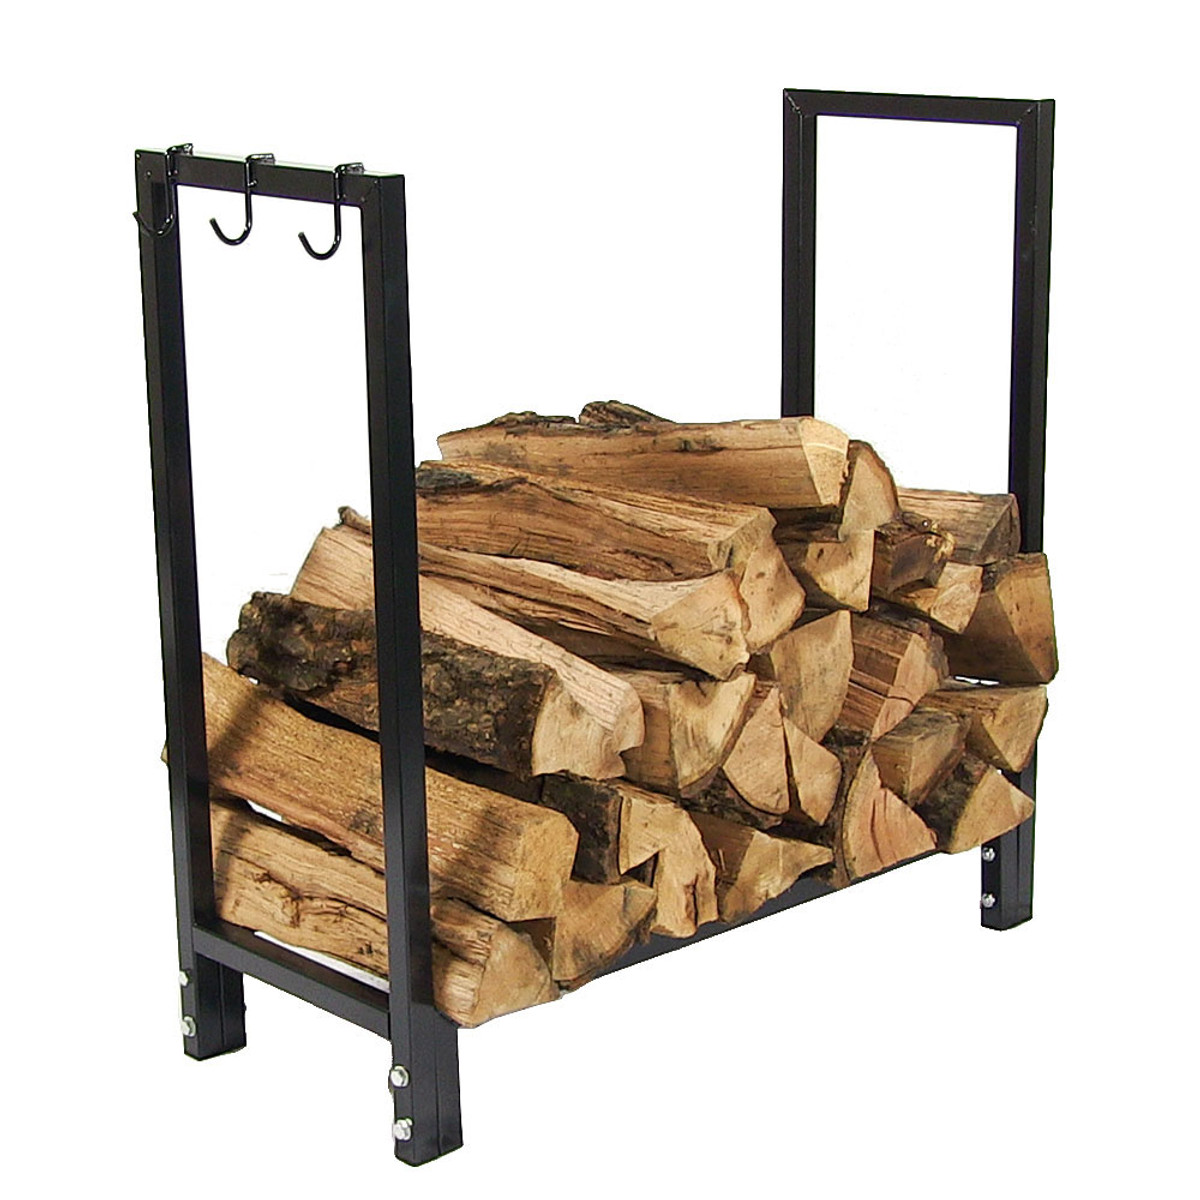 Outdoor Firewood Rack Sunnydaze Indoor Outdoor Steel Firewood Rack 30